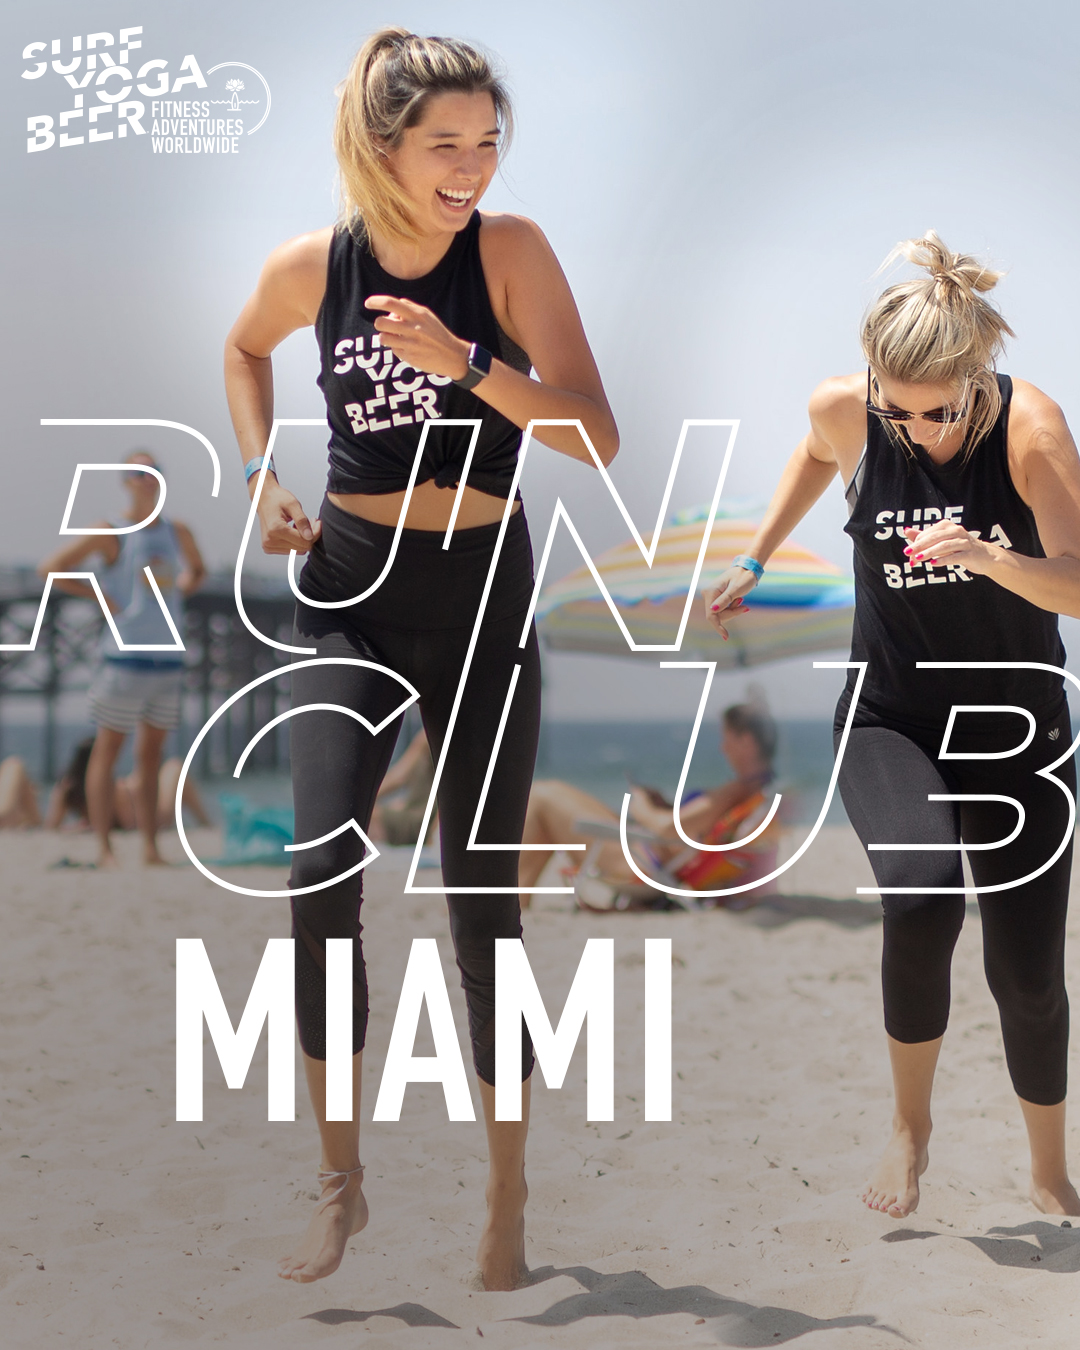 MORE INFO ON MIAMI RUN CLUB     Free     FIRST THURSDAY OF EVERY MONTH 6:30PM -    Lululemon Coral Gables